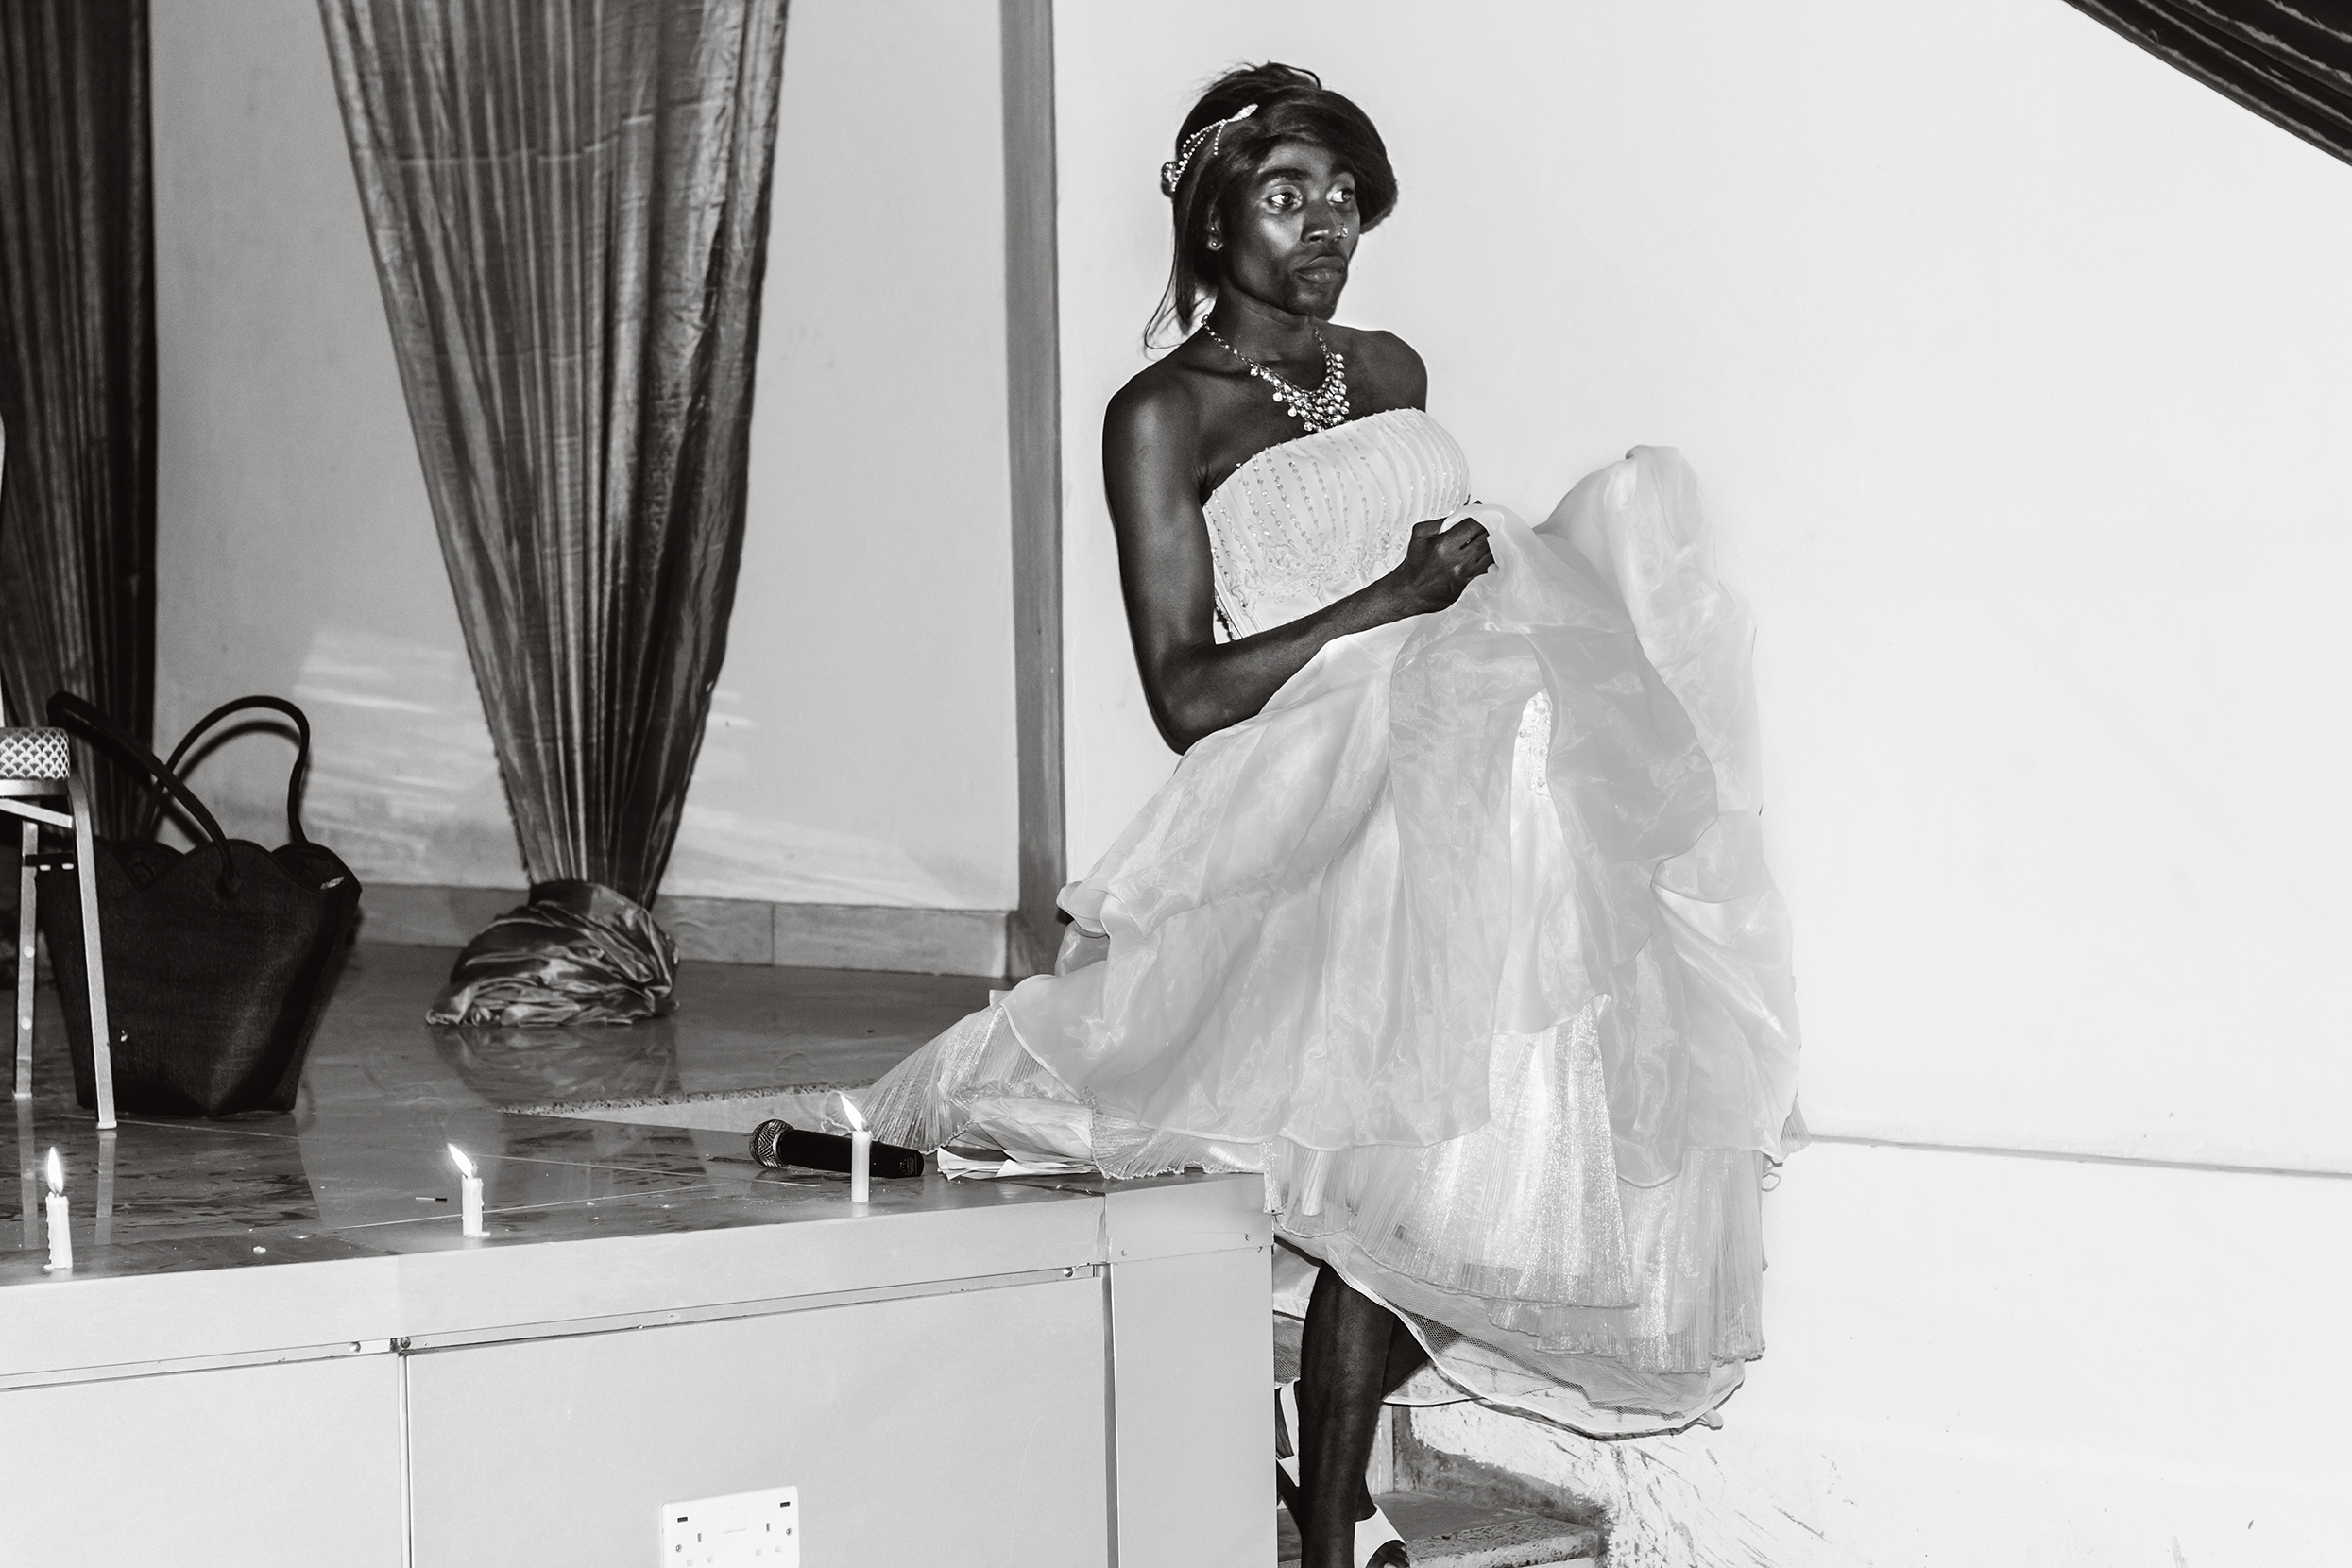 Eric Gyamfi, Henry performing in drag. From the series Just Like Us, 2016 Courtesy the artist